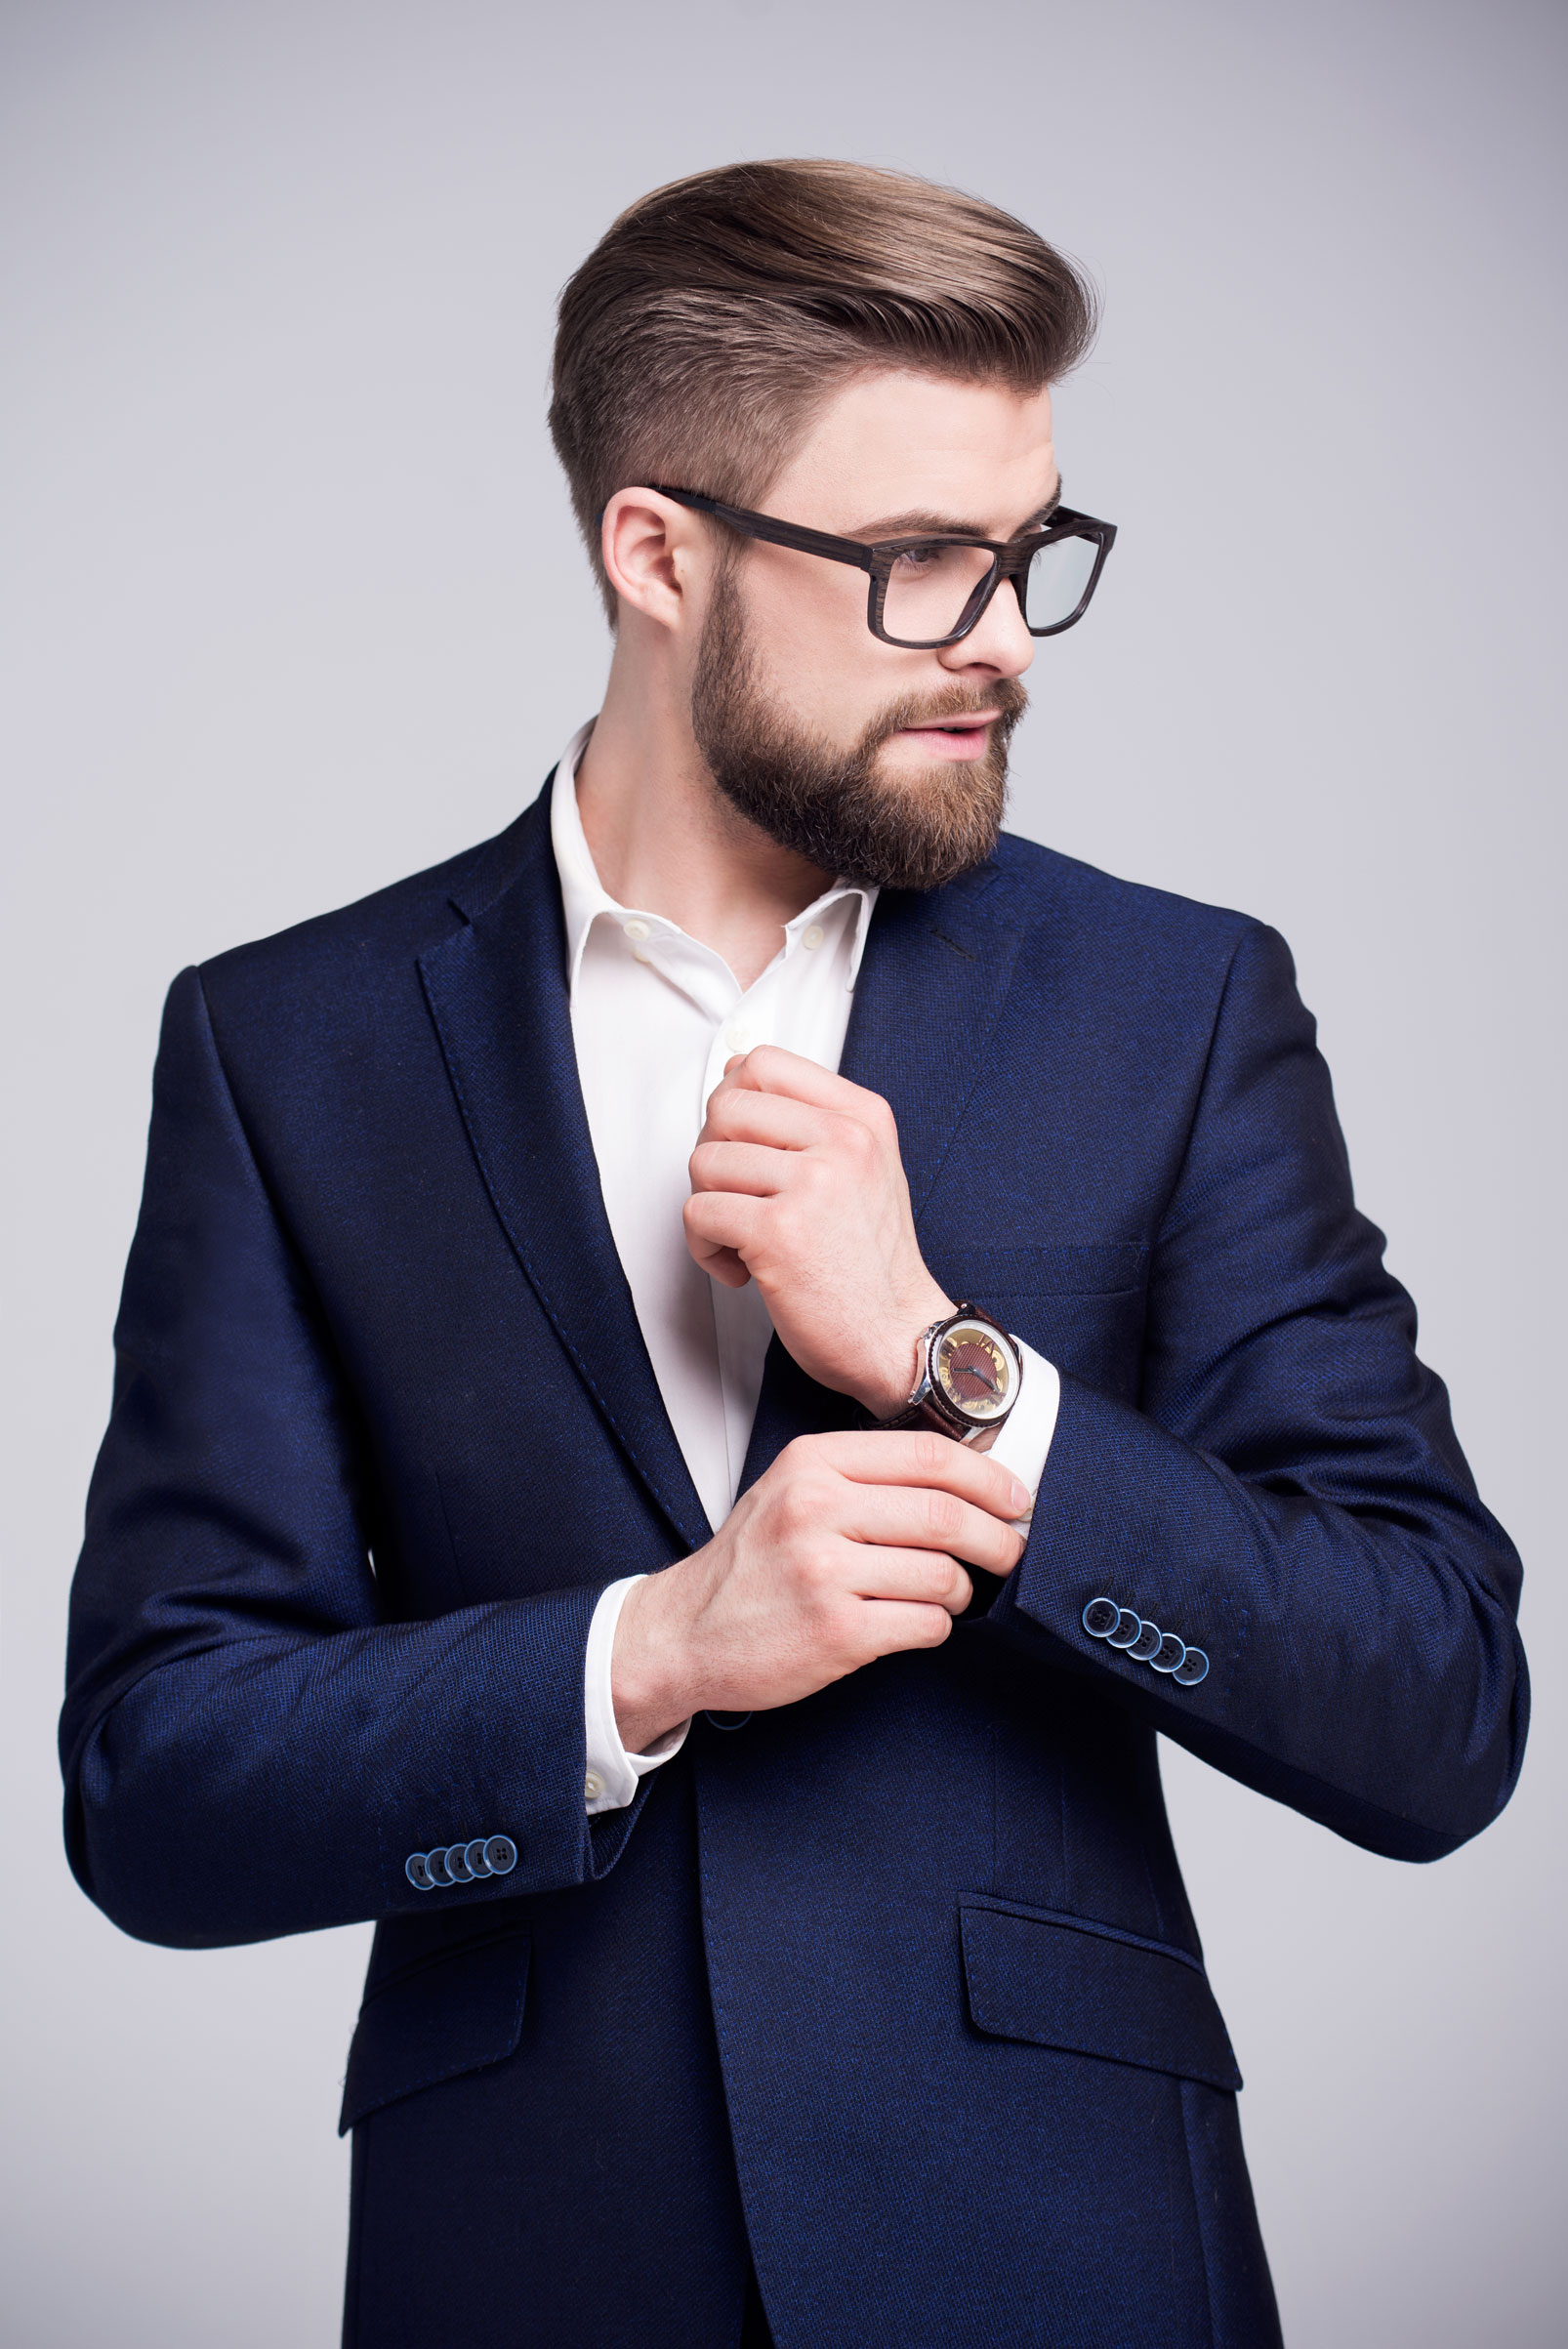 Tailor's Tips to Buying a Suit For Your Husband